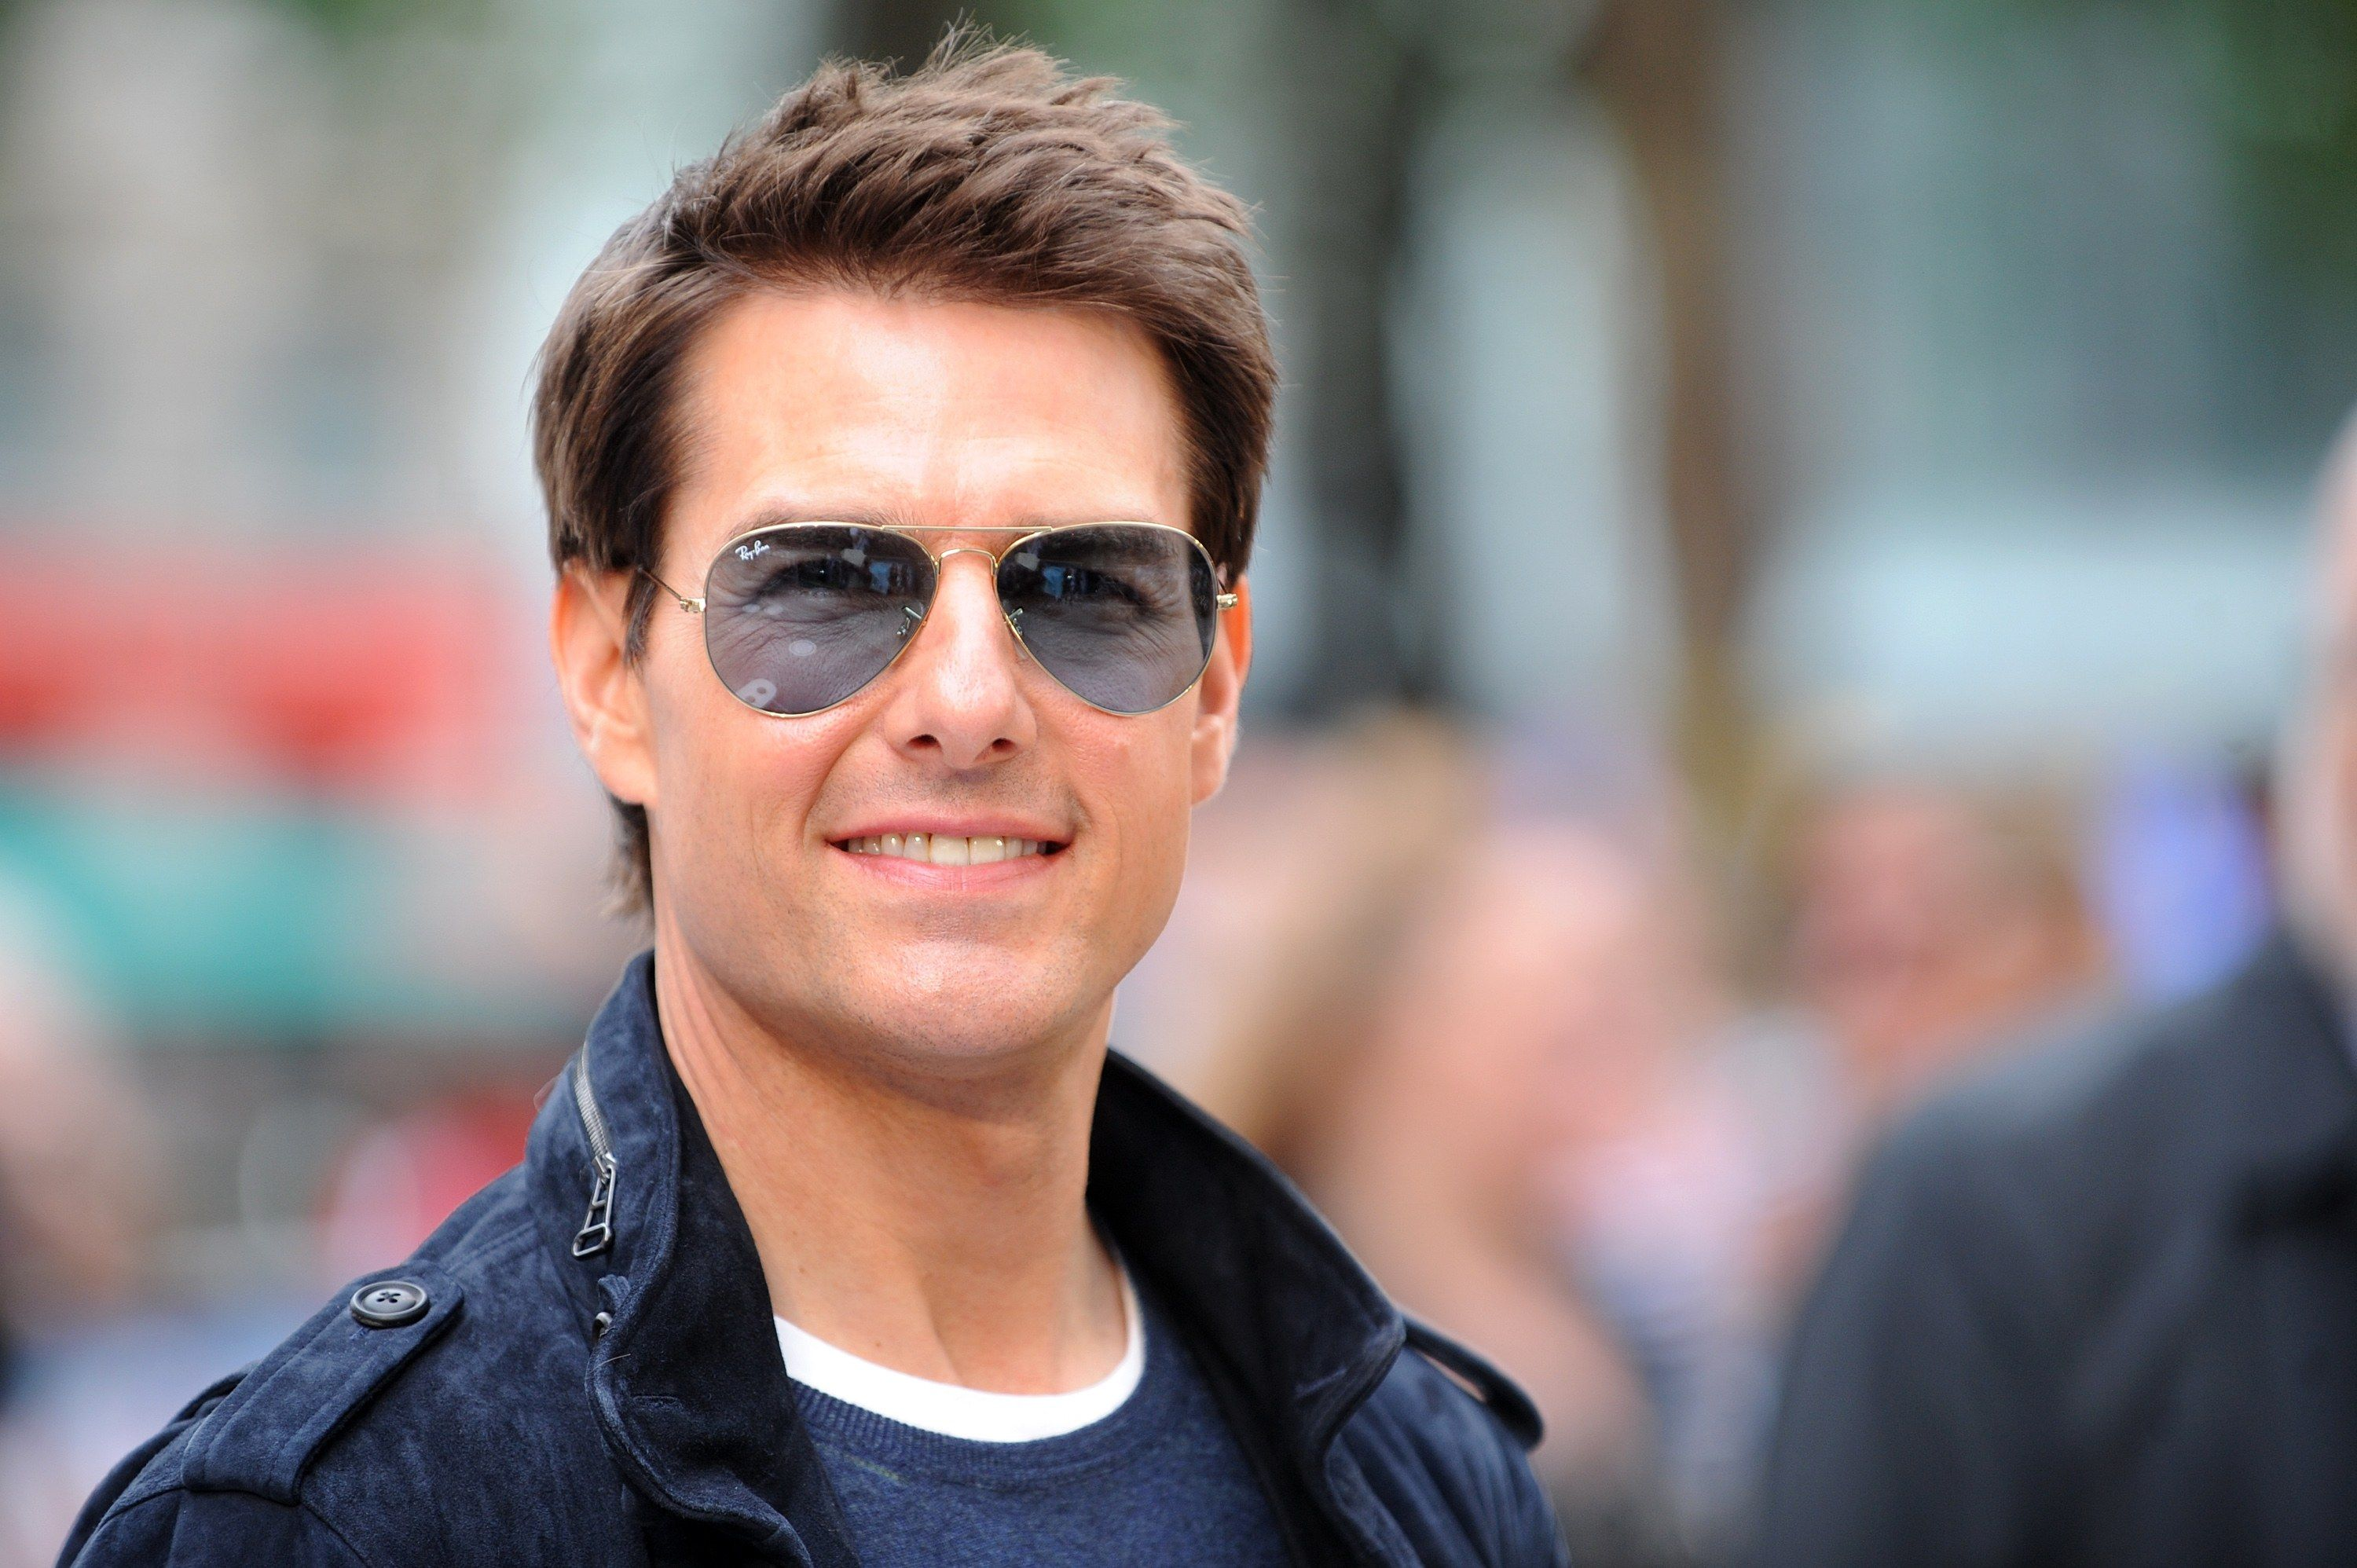 is tom cruise running for president in 2020